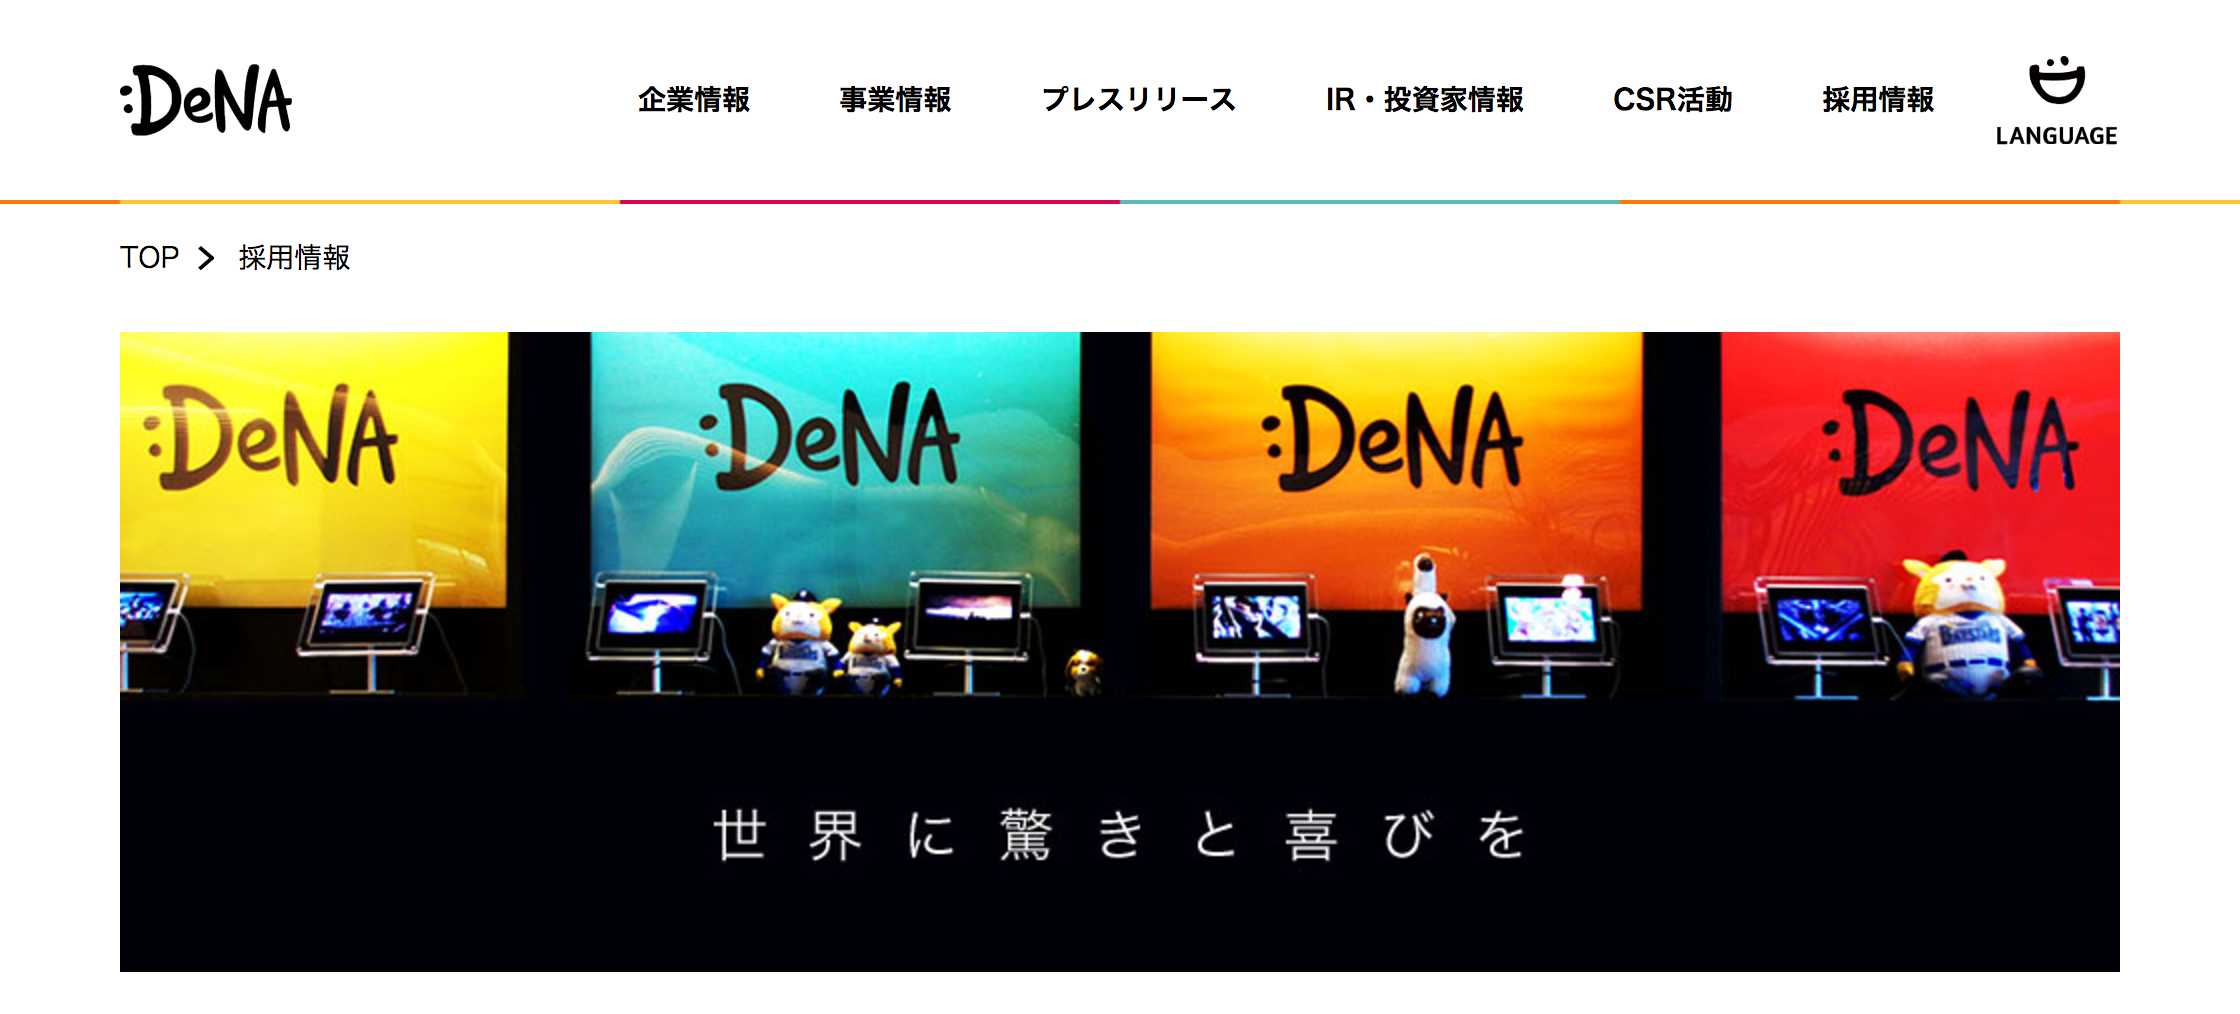 FireShot Capture 277 - 採用情報 I 株式会社ディー・エヌ・エー【DeNA】 - http___dena.com_jp_recruit_